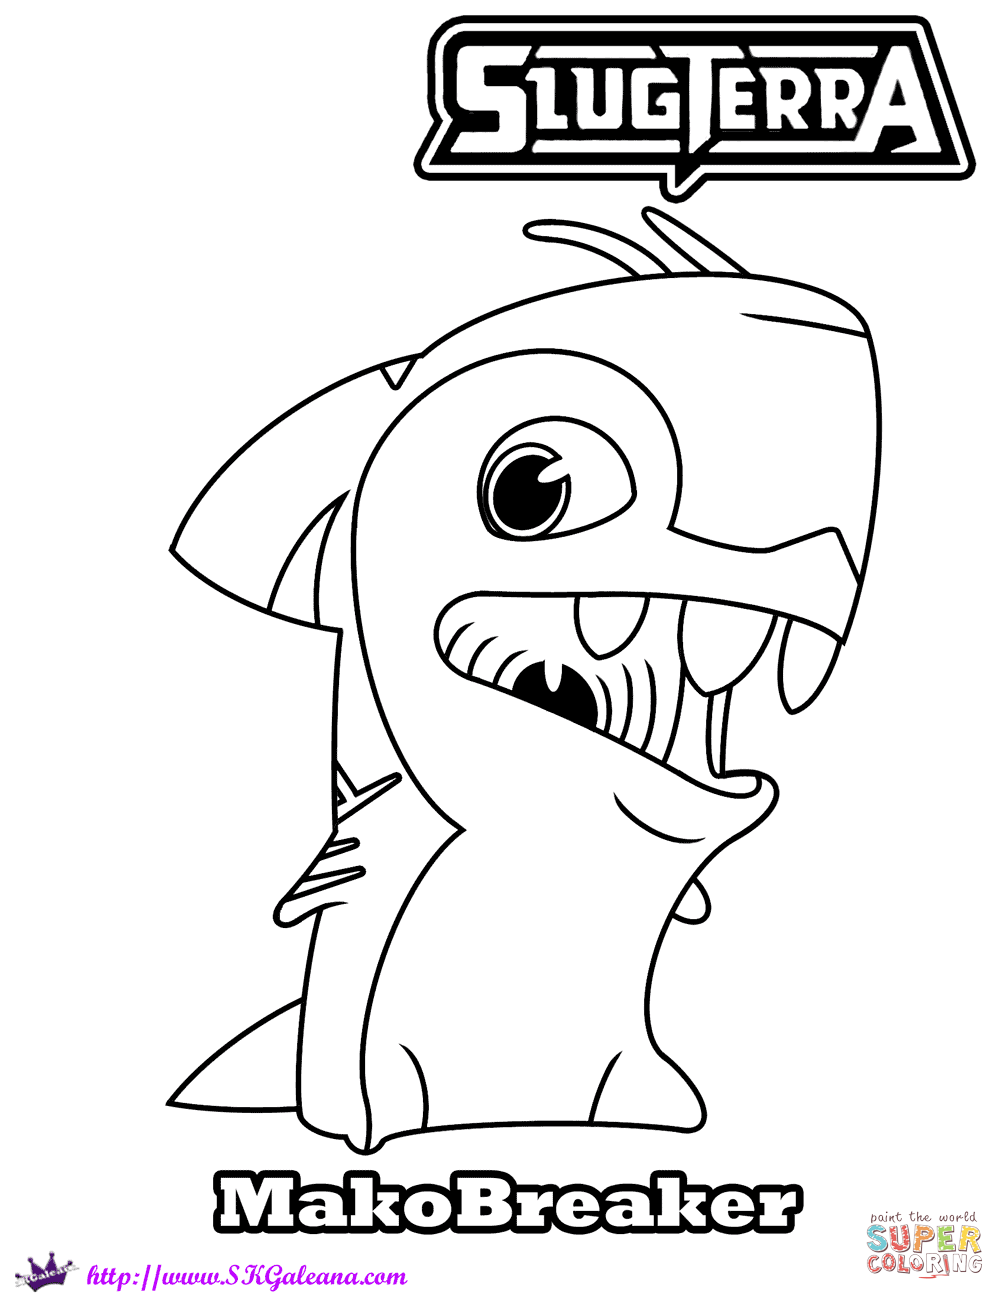 Makobreaker Coloring Page Free Printable Coloring Pages